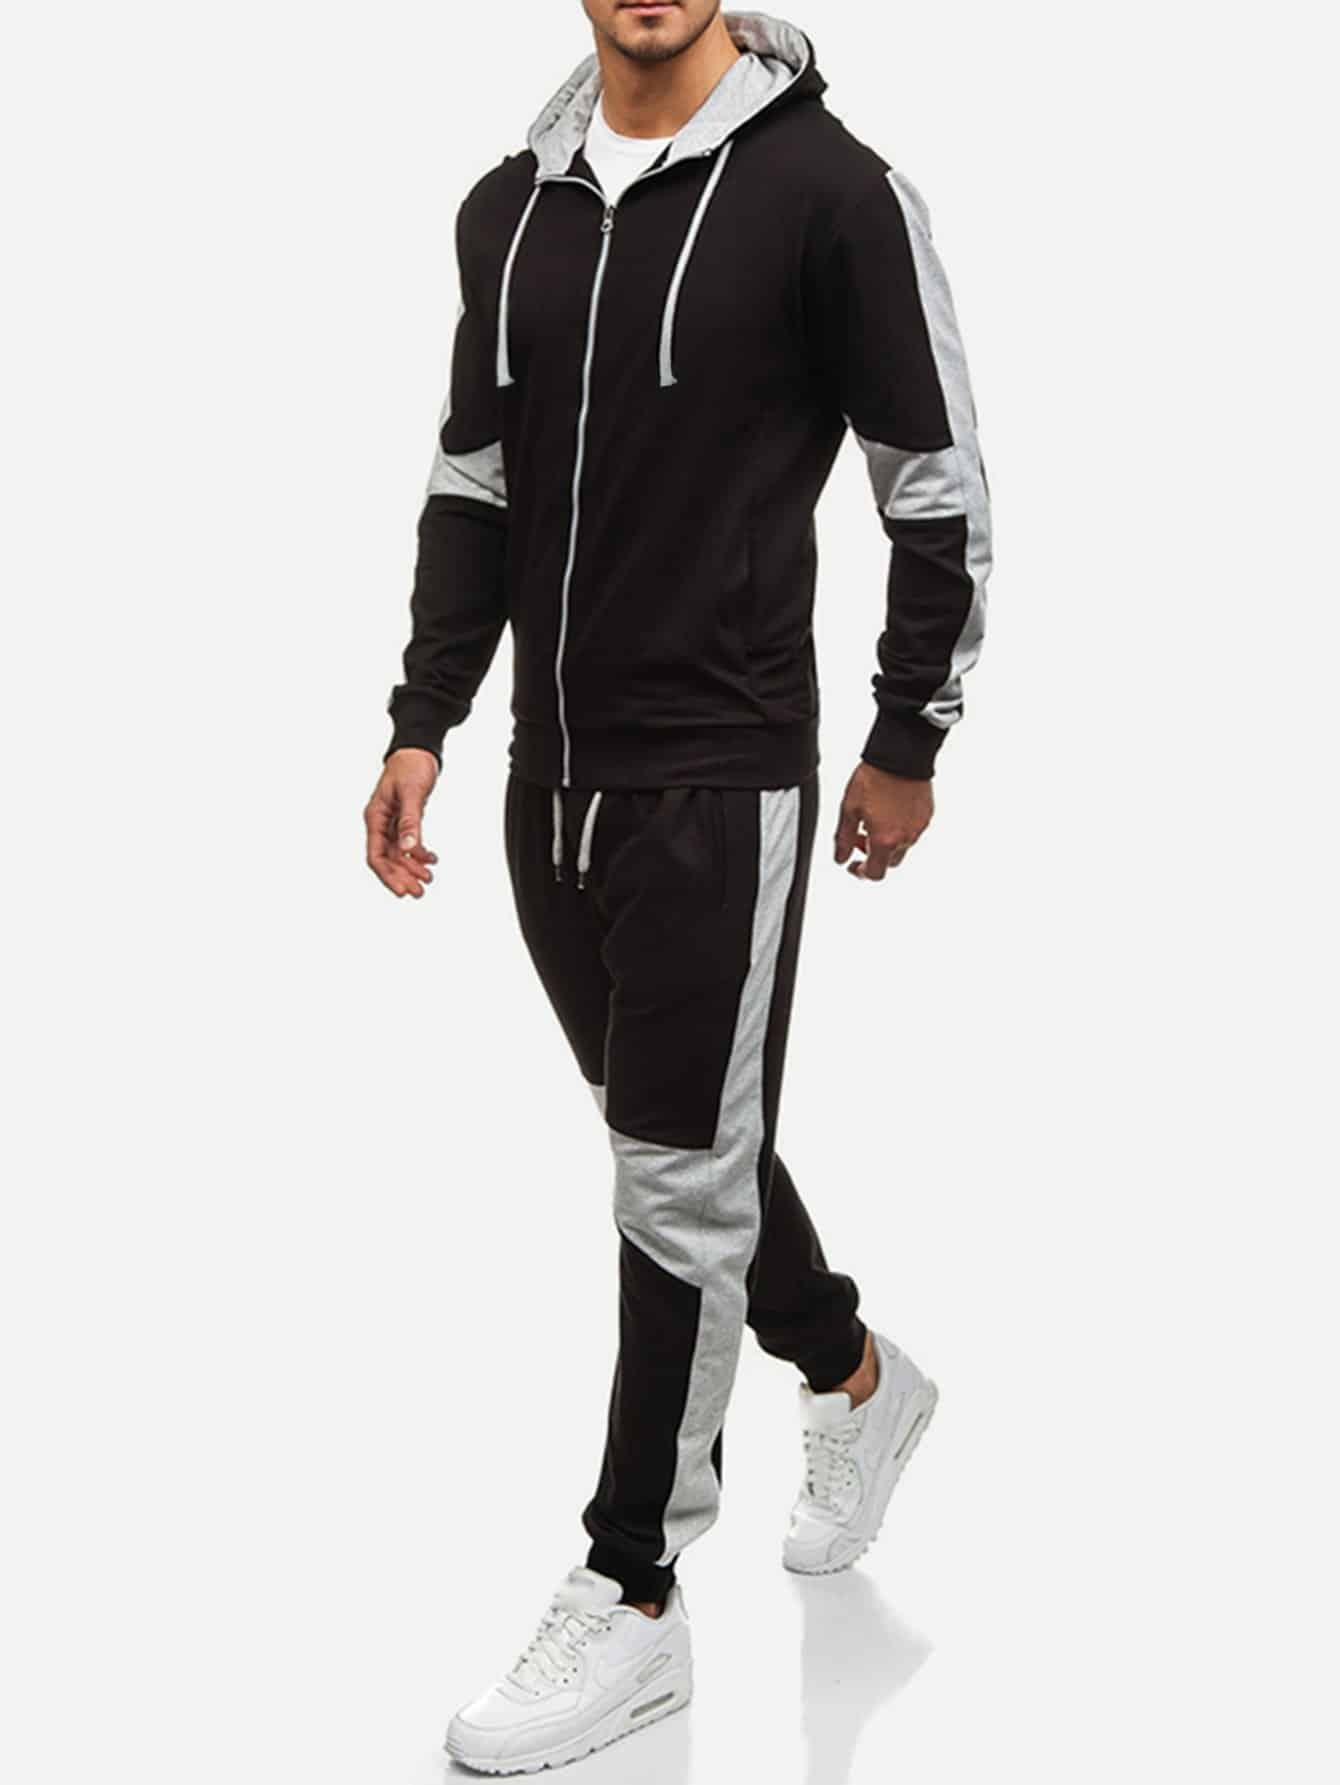 Men Cut And Sew Panel Hooded Sweatshirt With Drawstring Pants